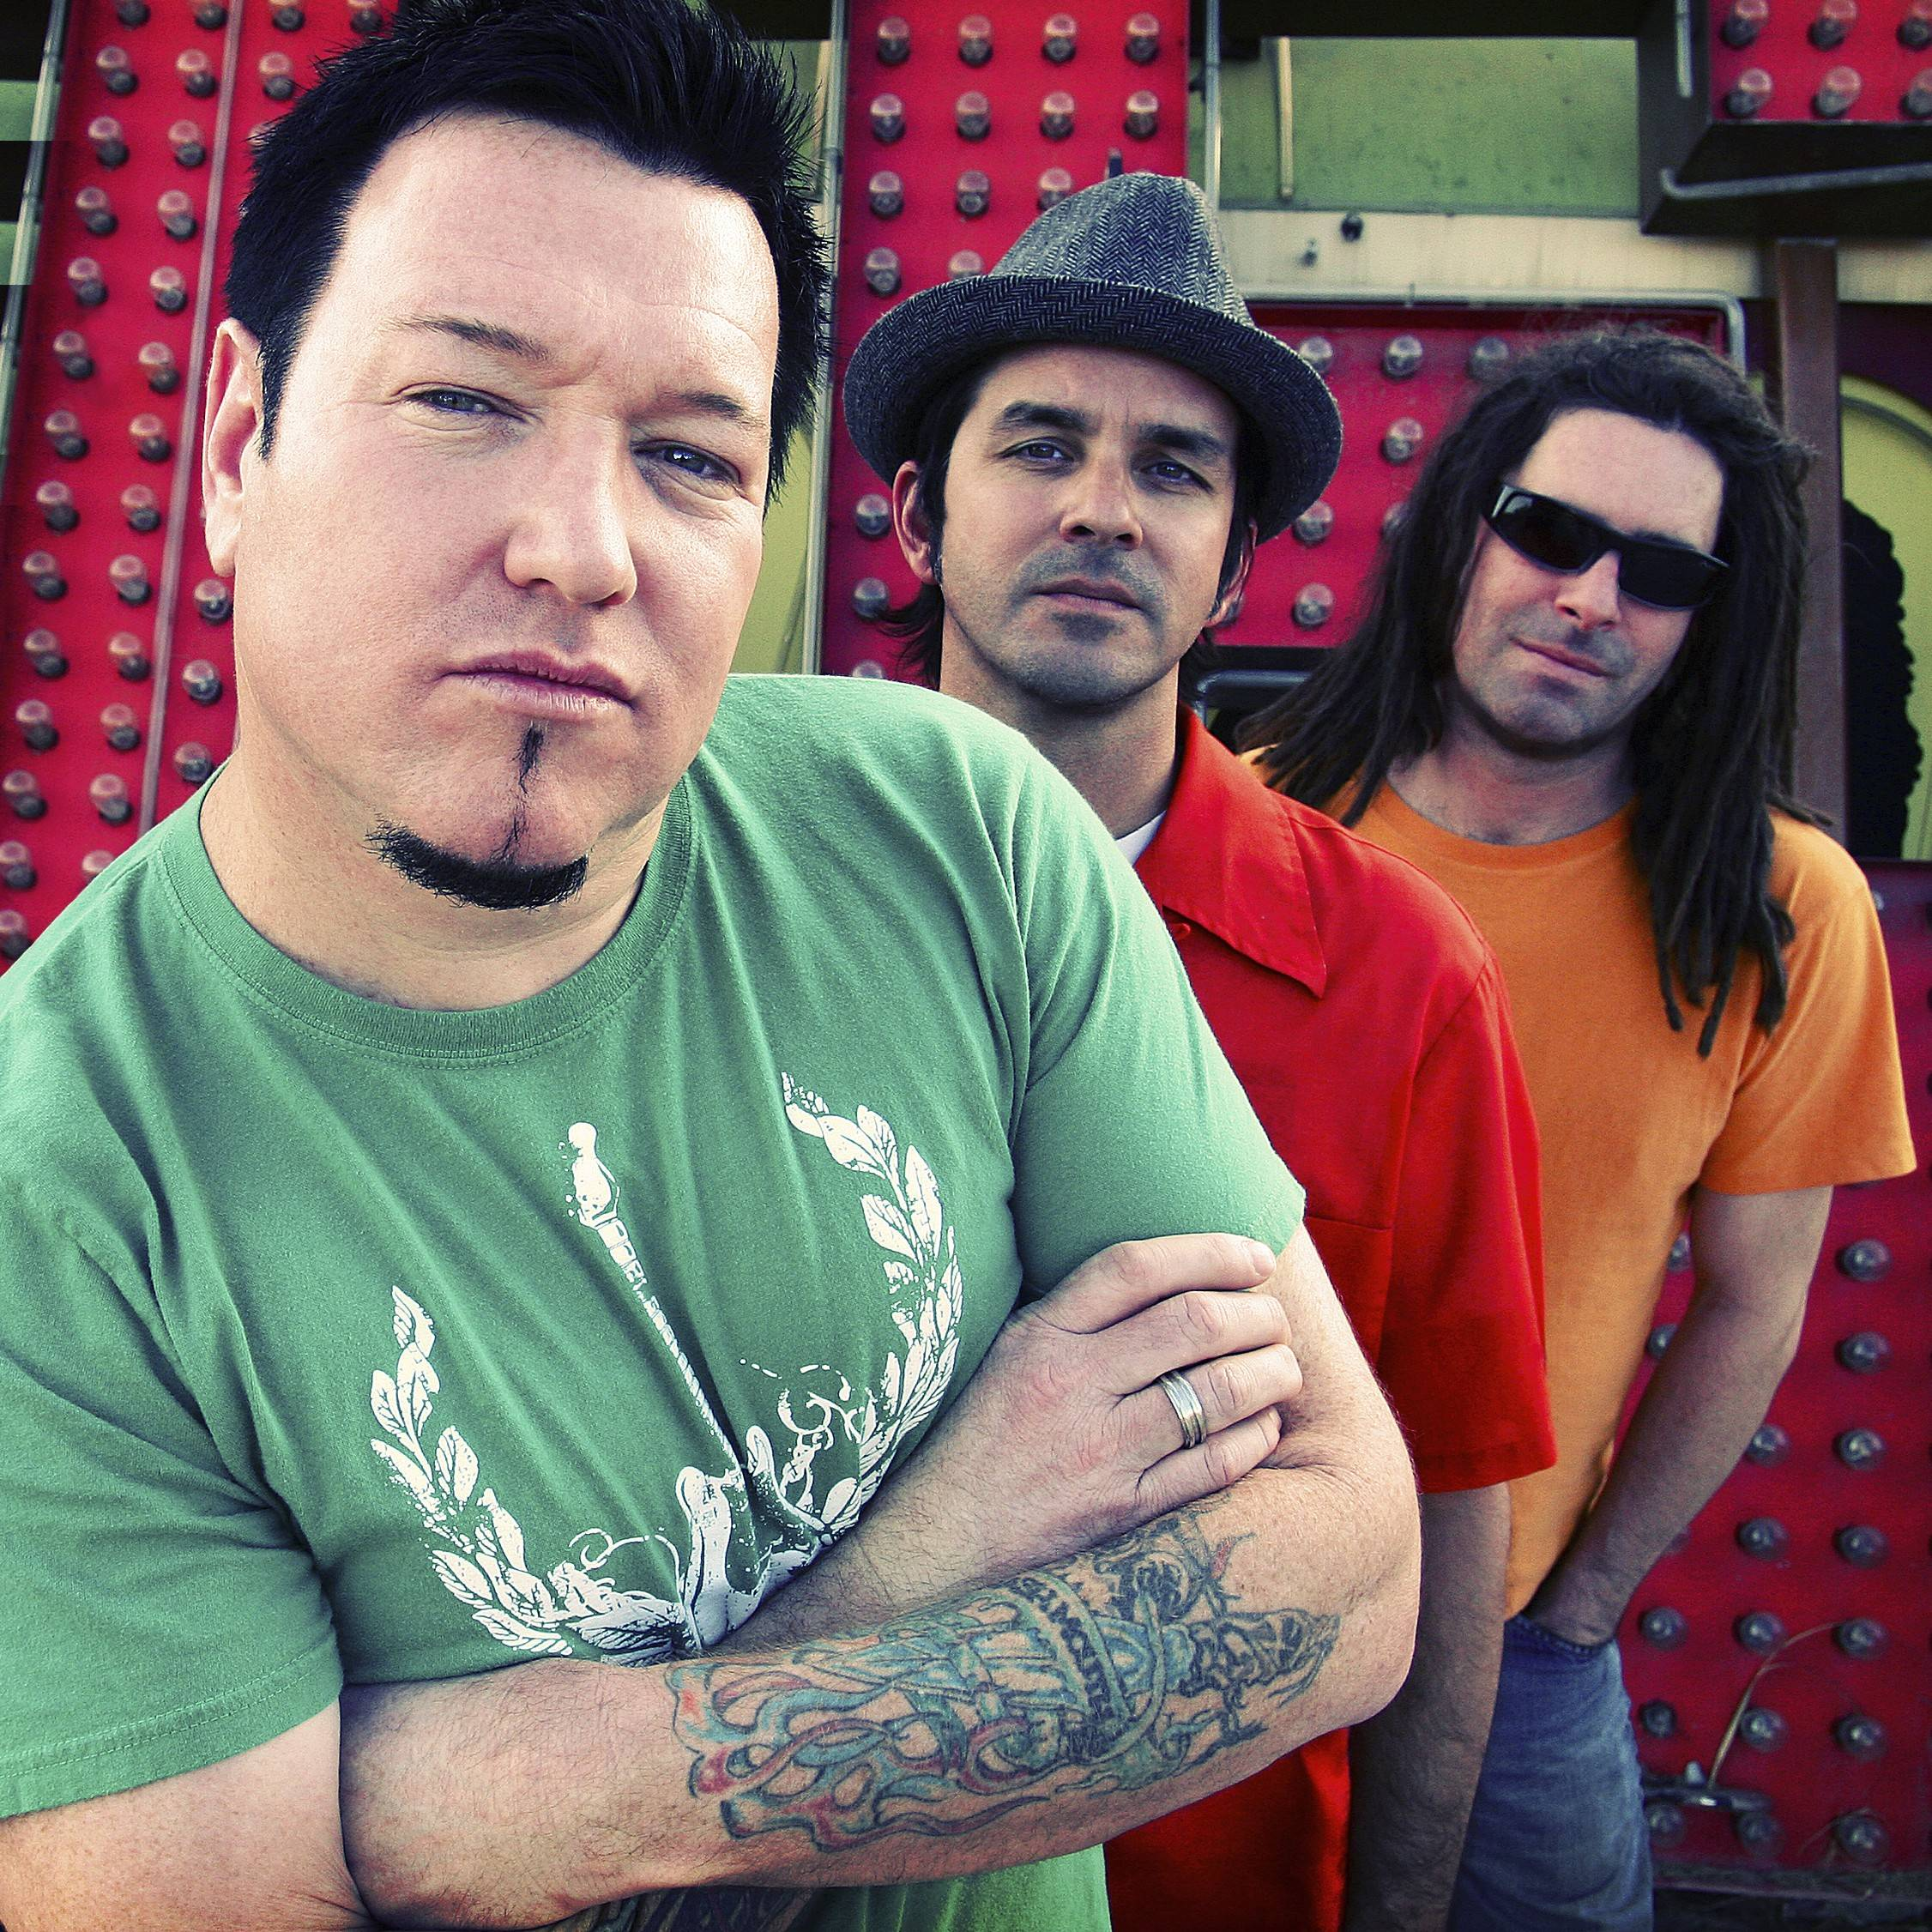 California Party Rockers Smash Mouth will perform Saturday night outside the Sears Centre Arena in Hoffman Estates as the featured act of this year's Northwest Fourth Fest.